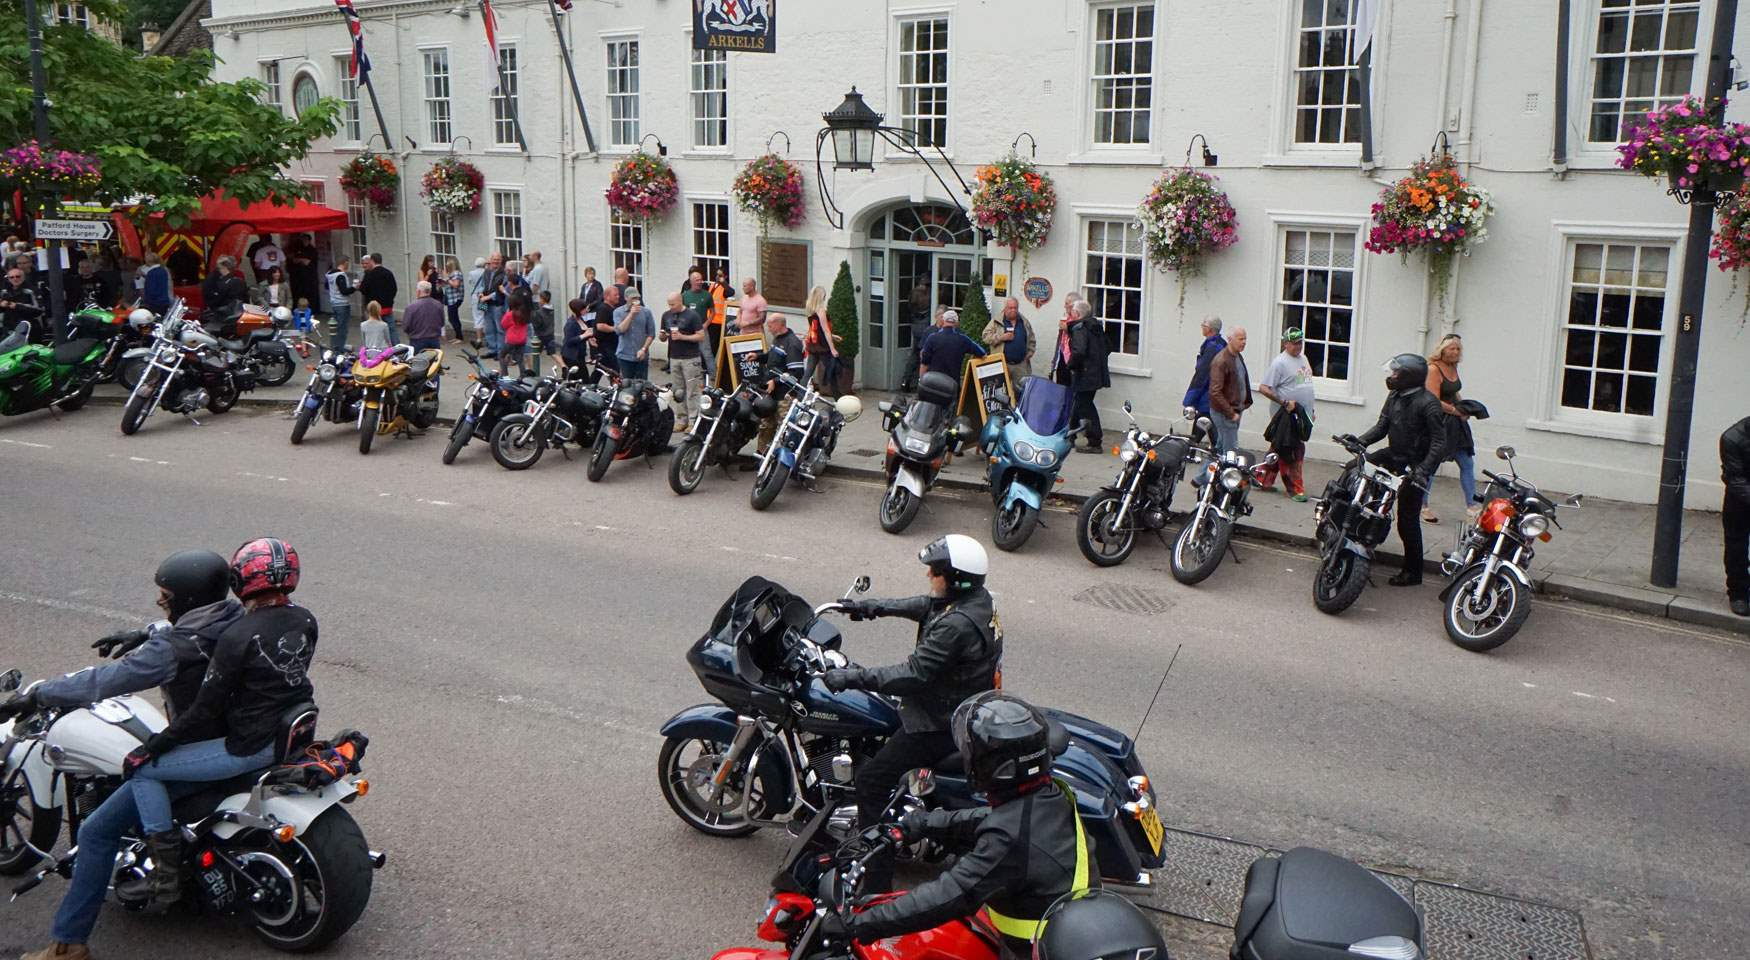 Motorcyles outside The Lansdowne Strand - copyright Paul Stallard